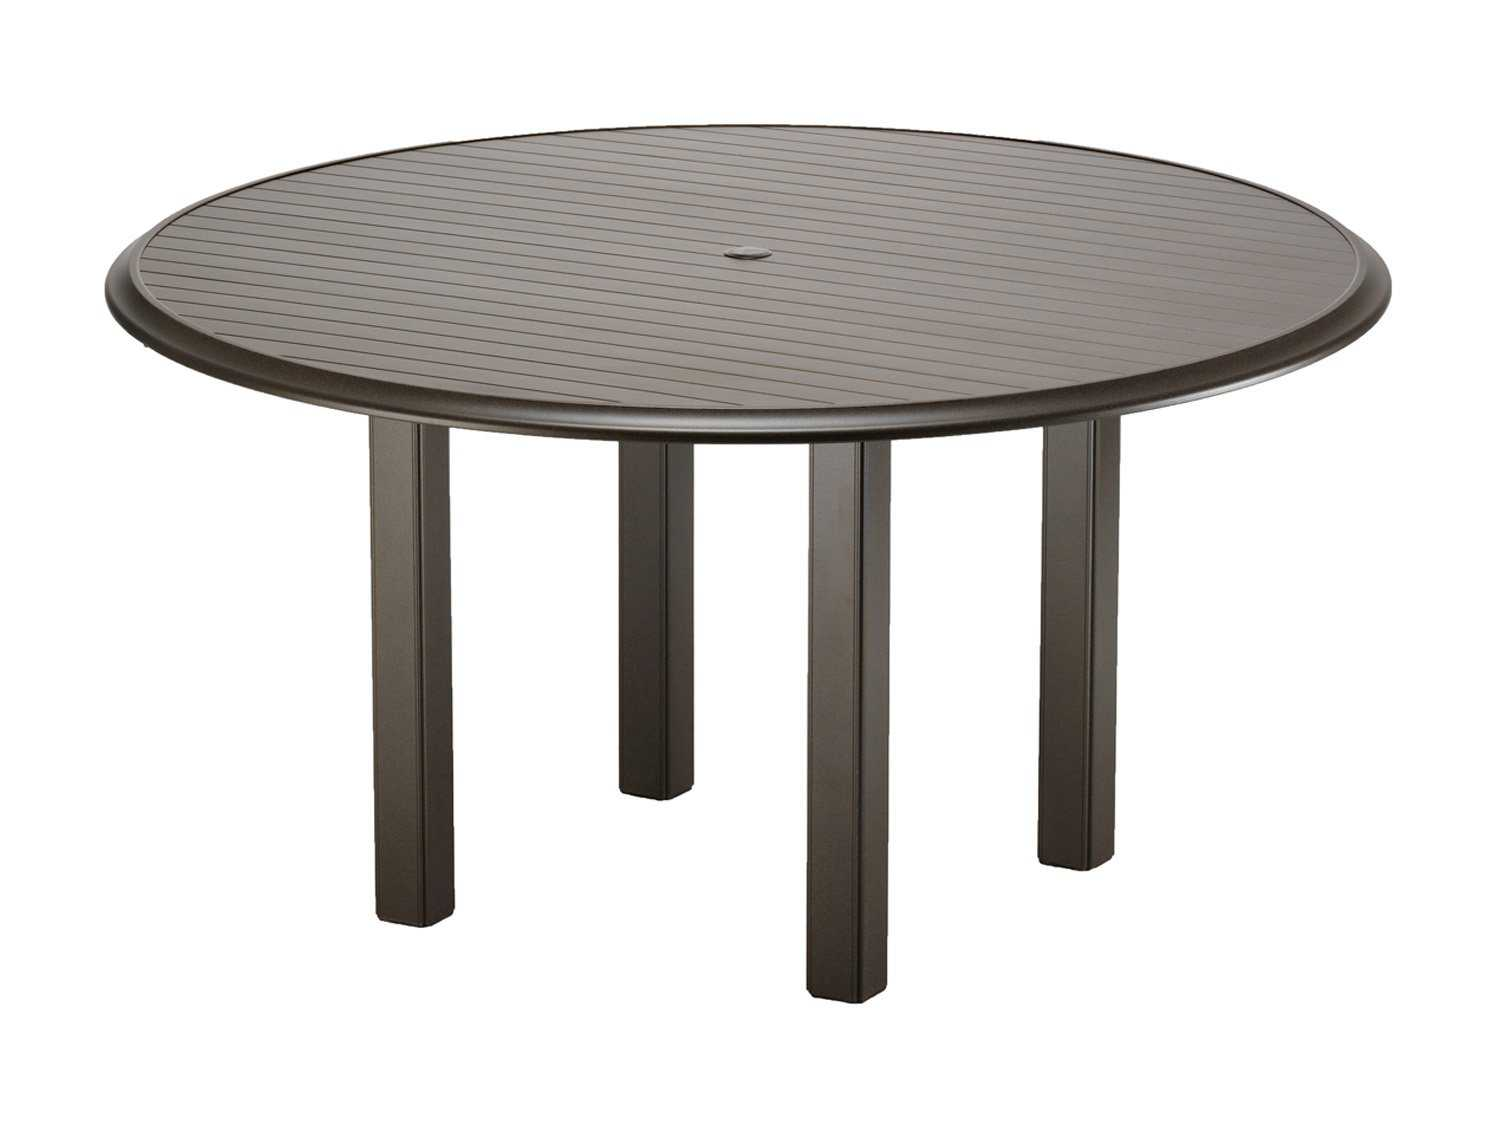 Telescope casual aluminum slat top 56 round chat table for Table umbrella